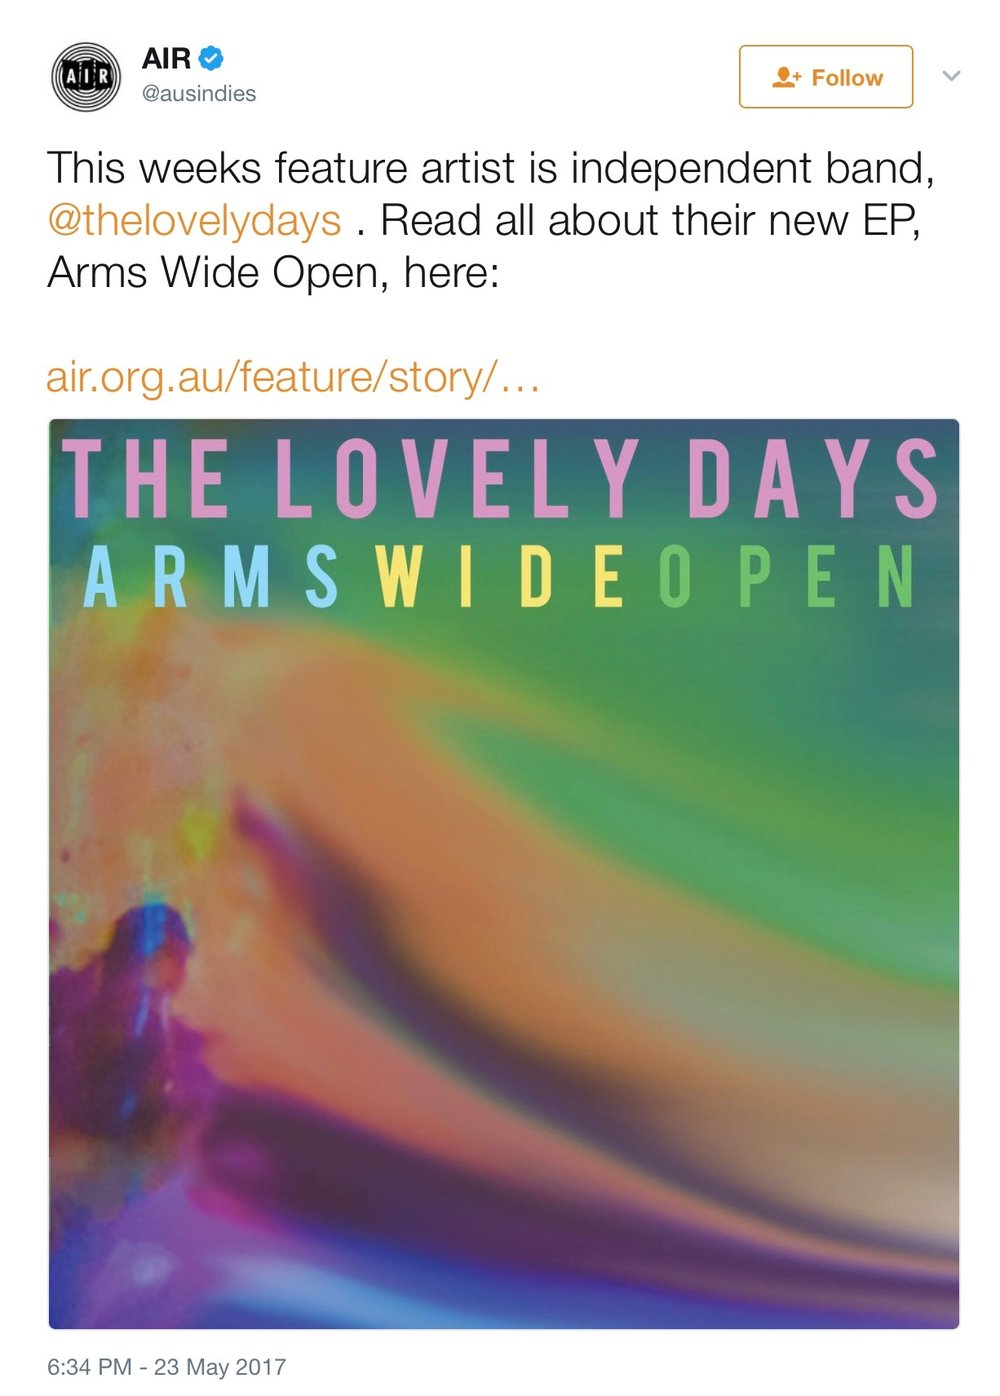 Read More -  https://www.air.org.au/feature/story/the-lovely-days-arms-wide-open